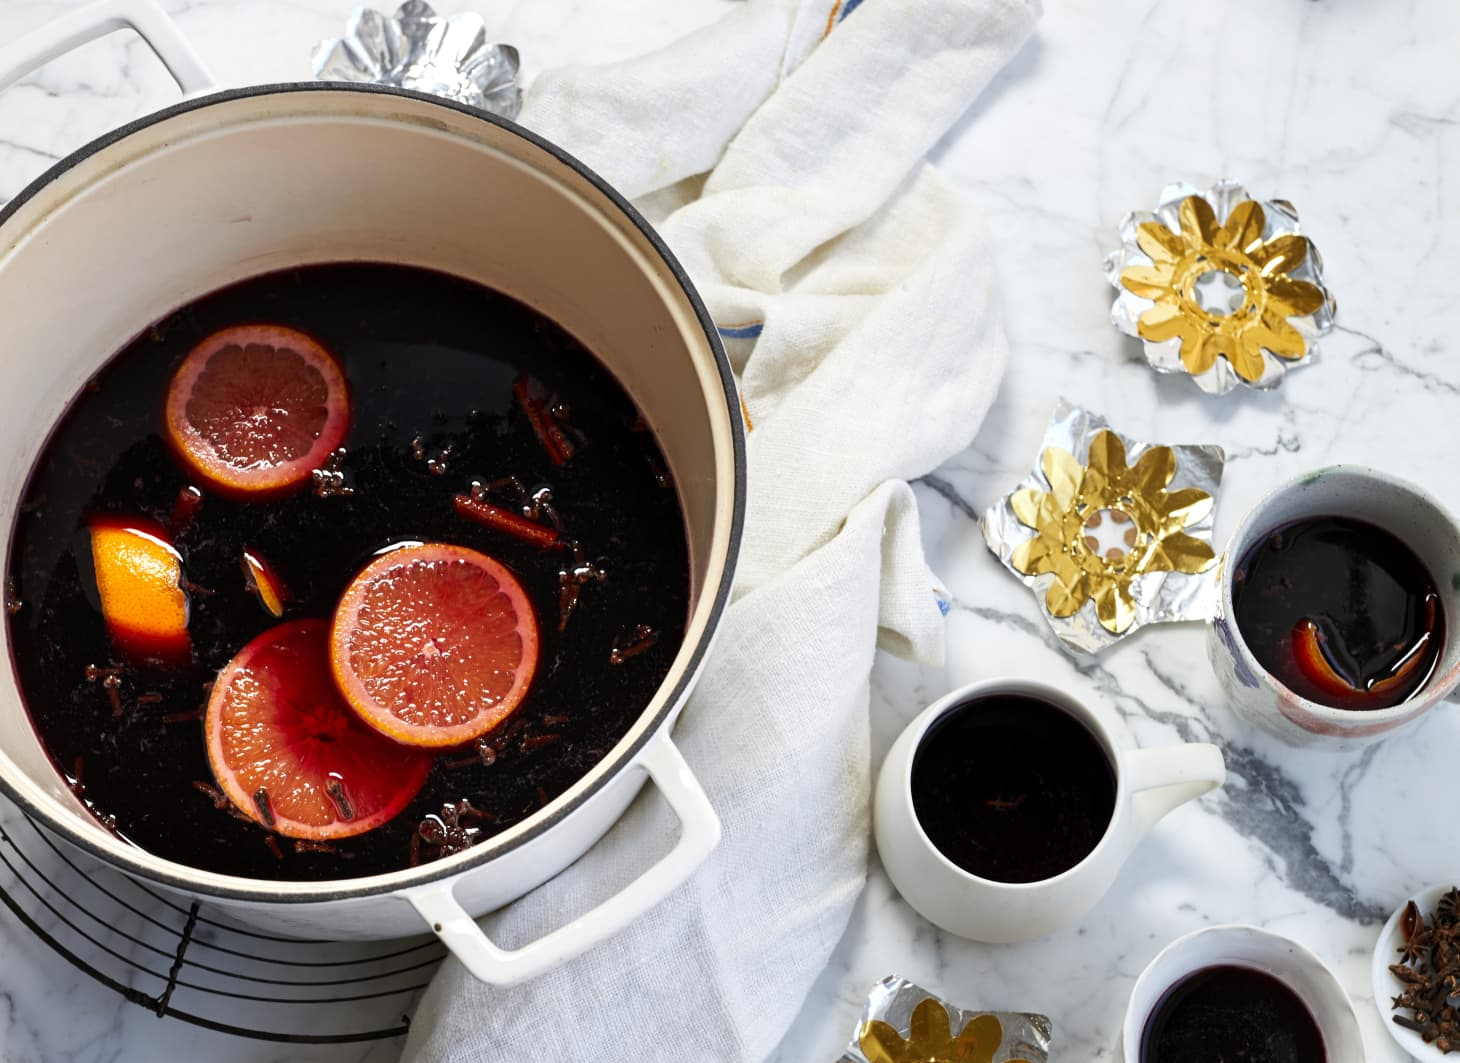 Pot filled with hot gluhwein & sliced oranges next to mugs filled with gluhwein